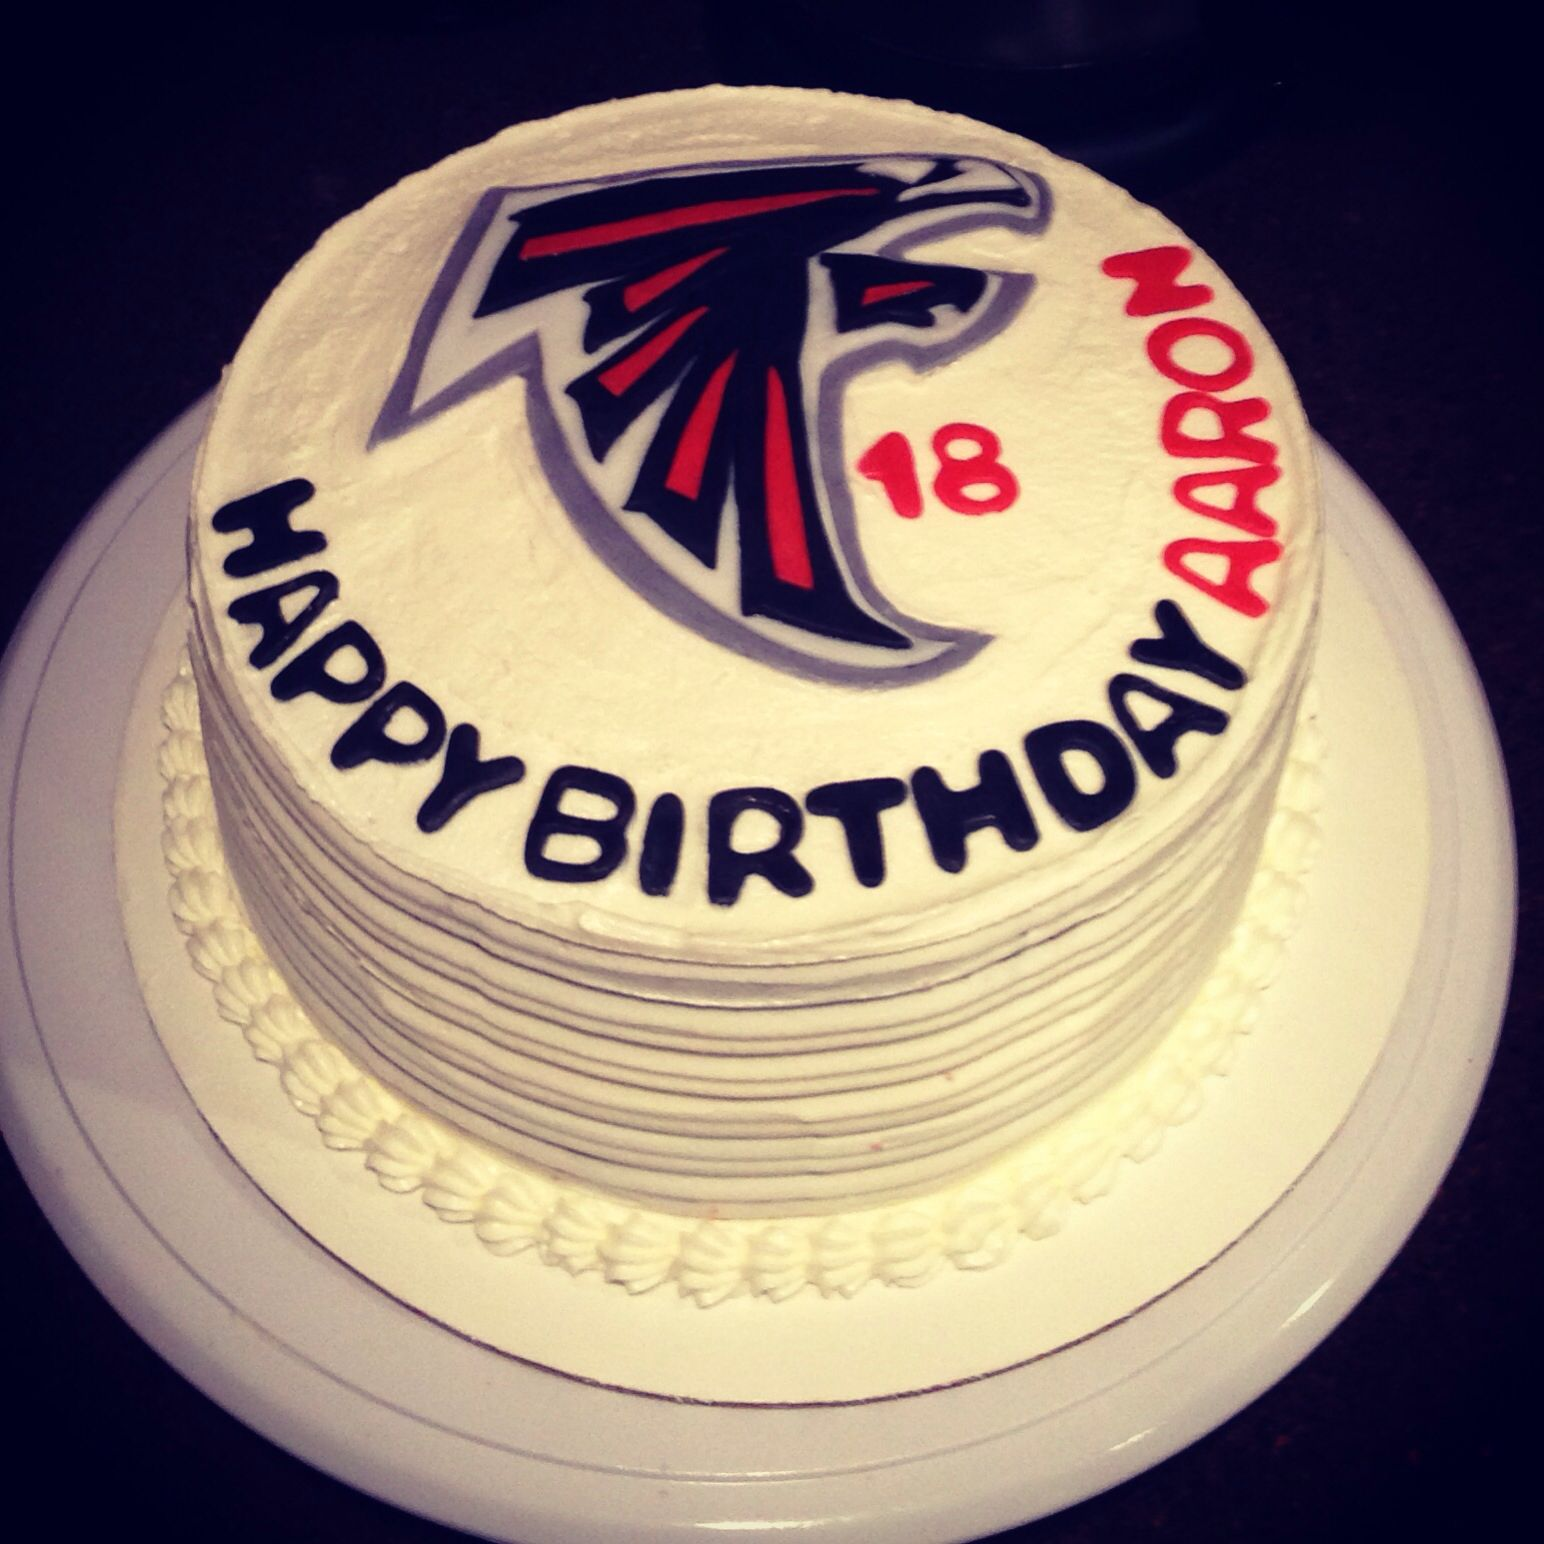 Made My Nephew A Atlanta Falcon Buttercream Cake For His 18th Birthday. (Last Minute Idea.) Love